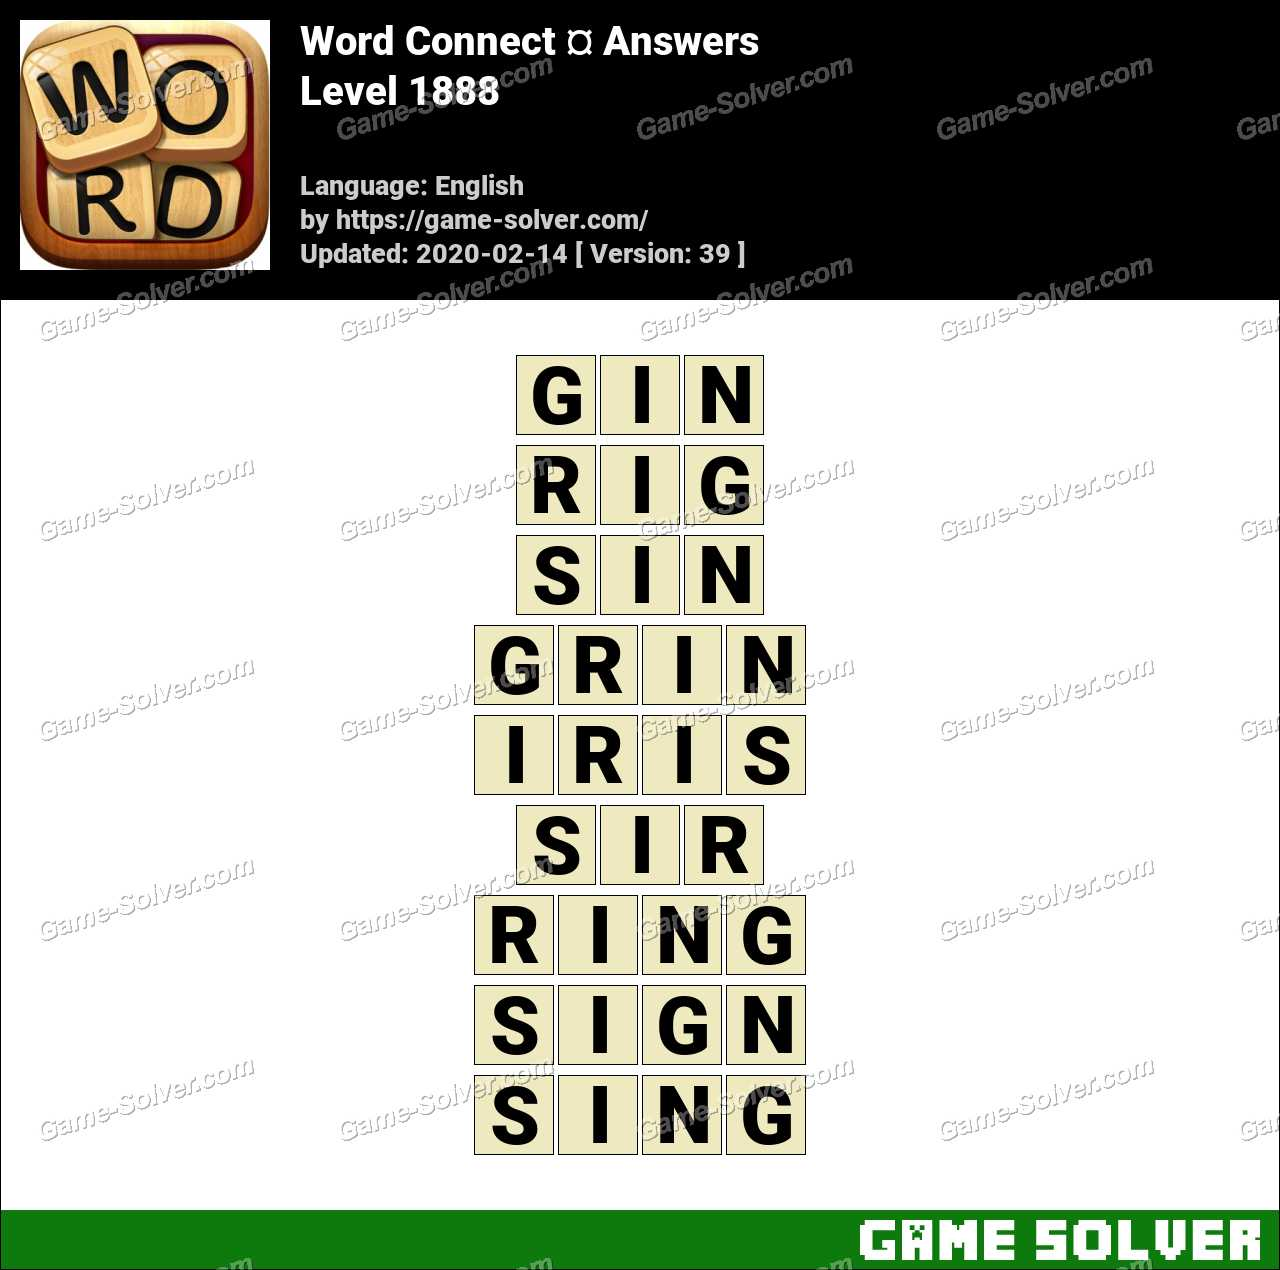 Word Connect Level 1888 Answers